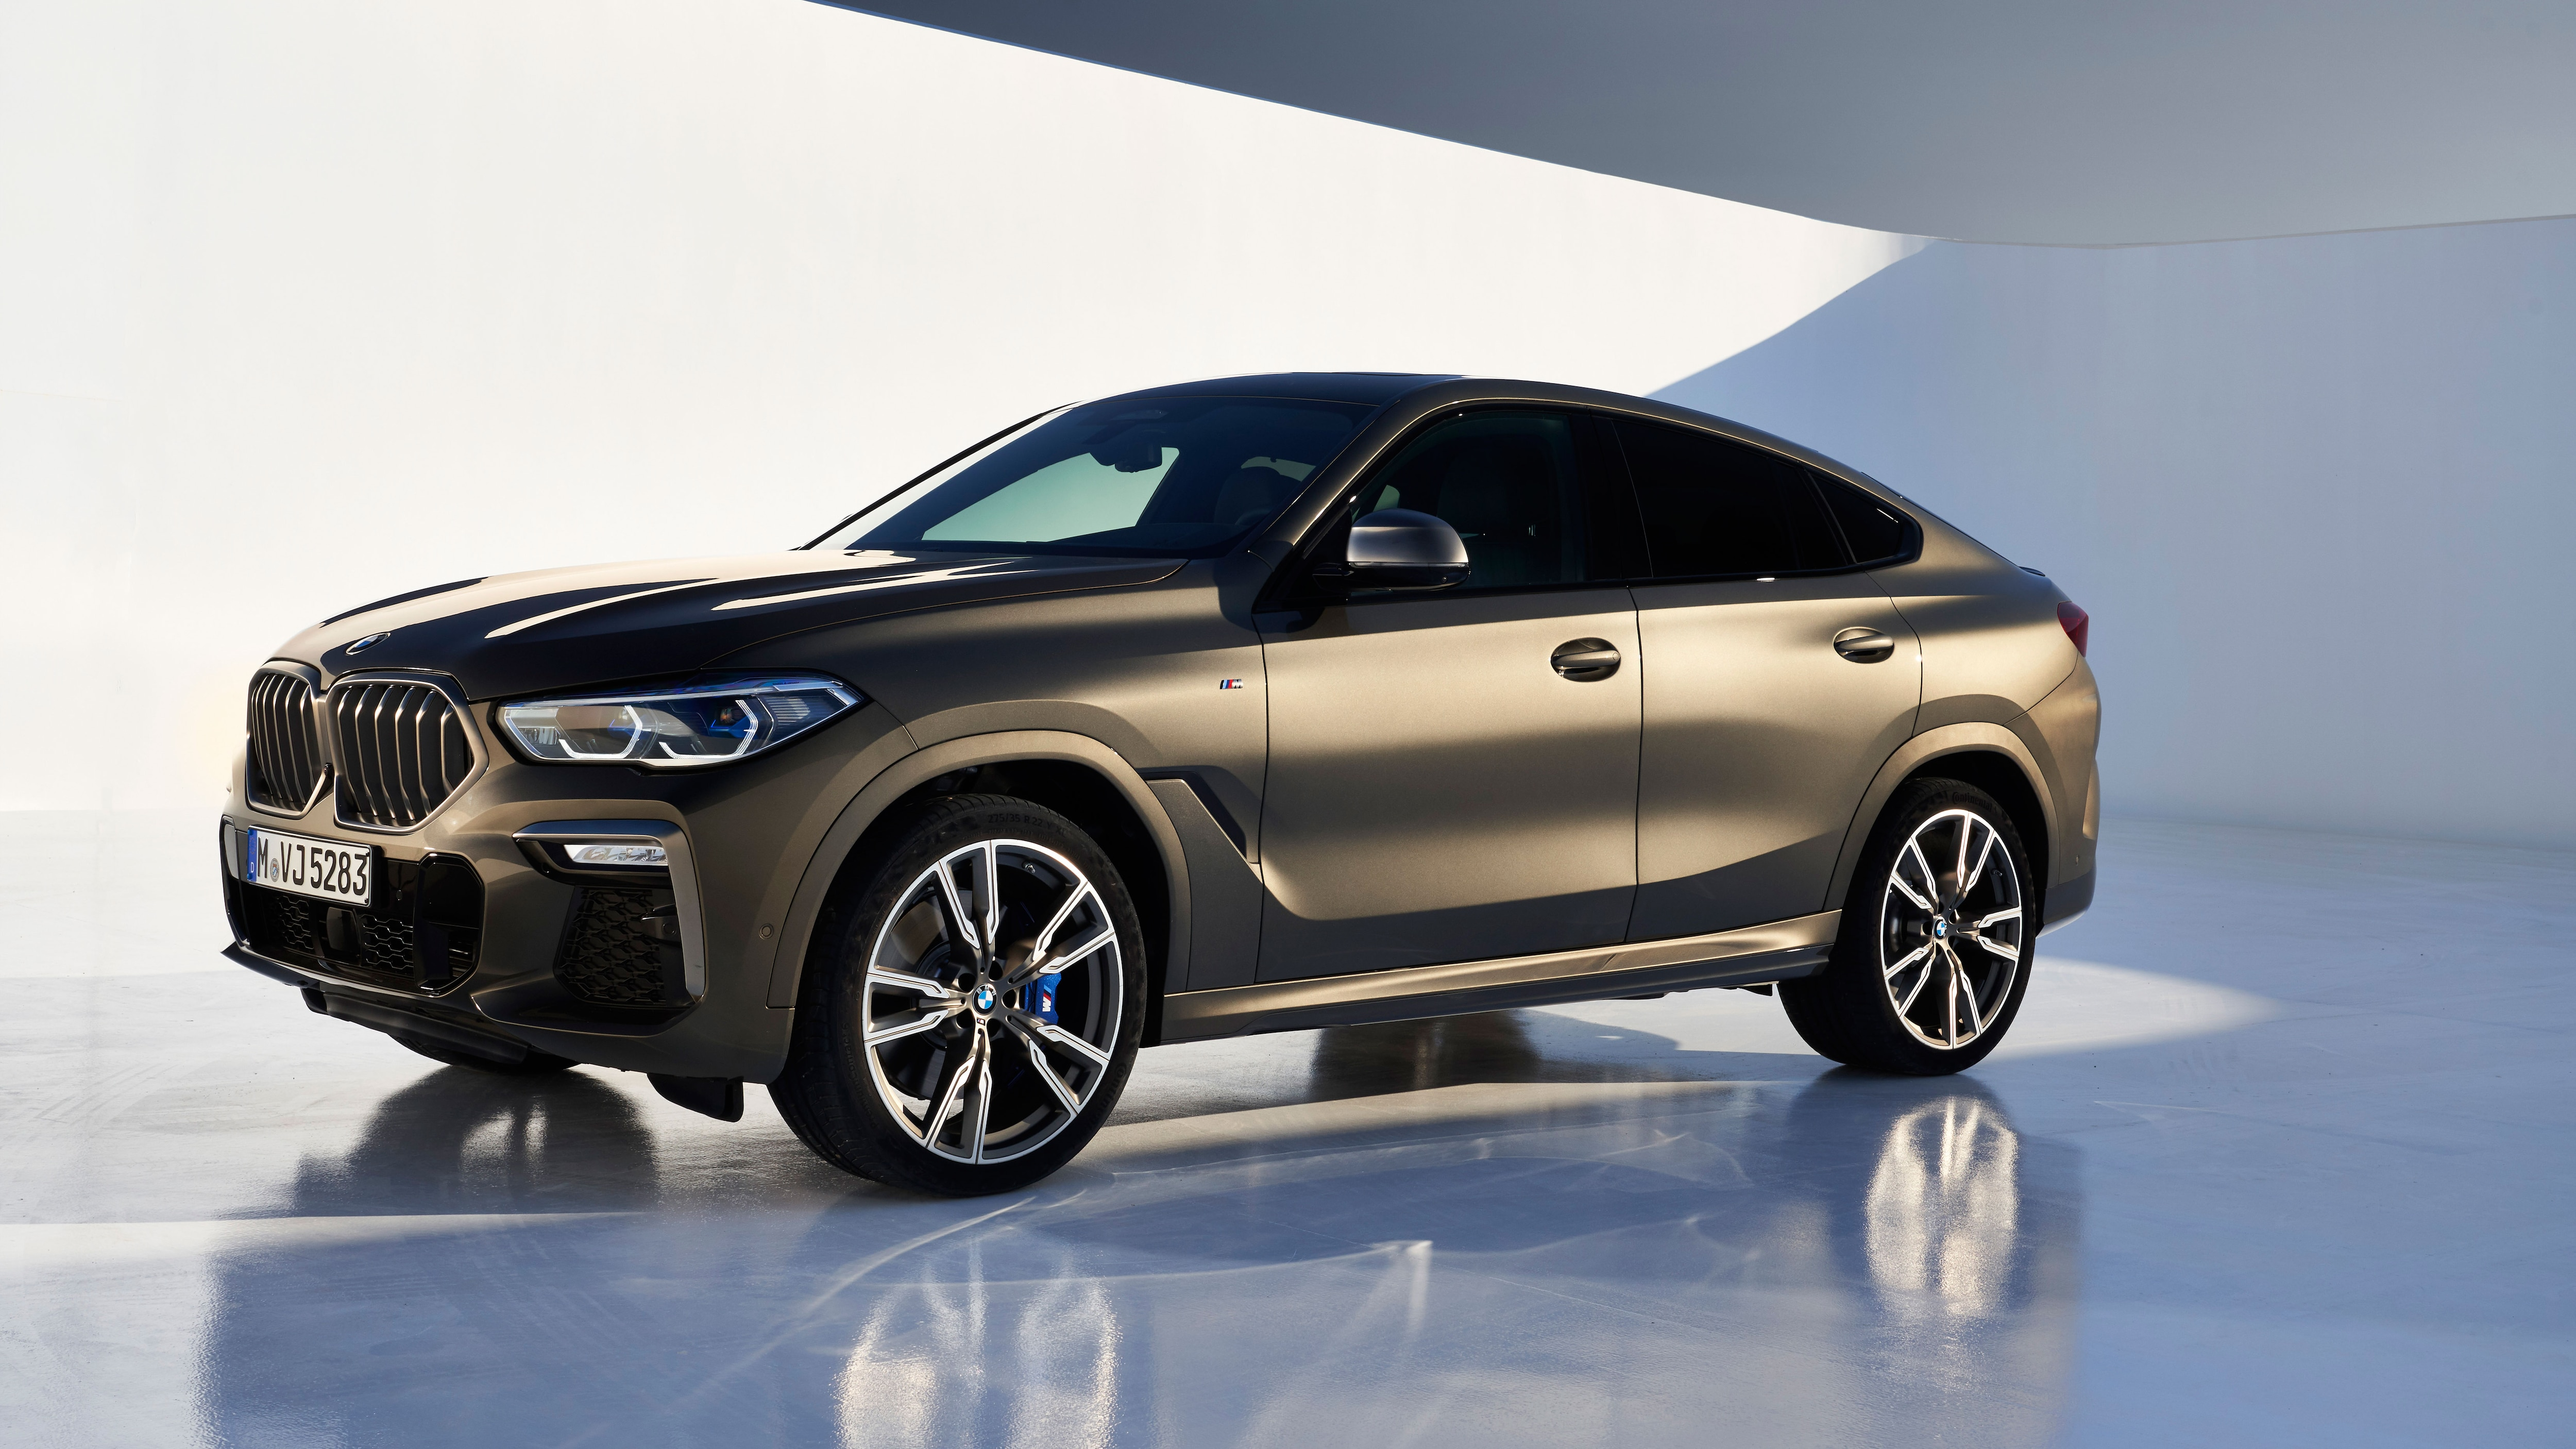 The 2020 Bmw X6 Looks Like An X5 And 8 Series Mashup Automobile